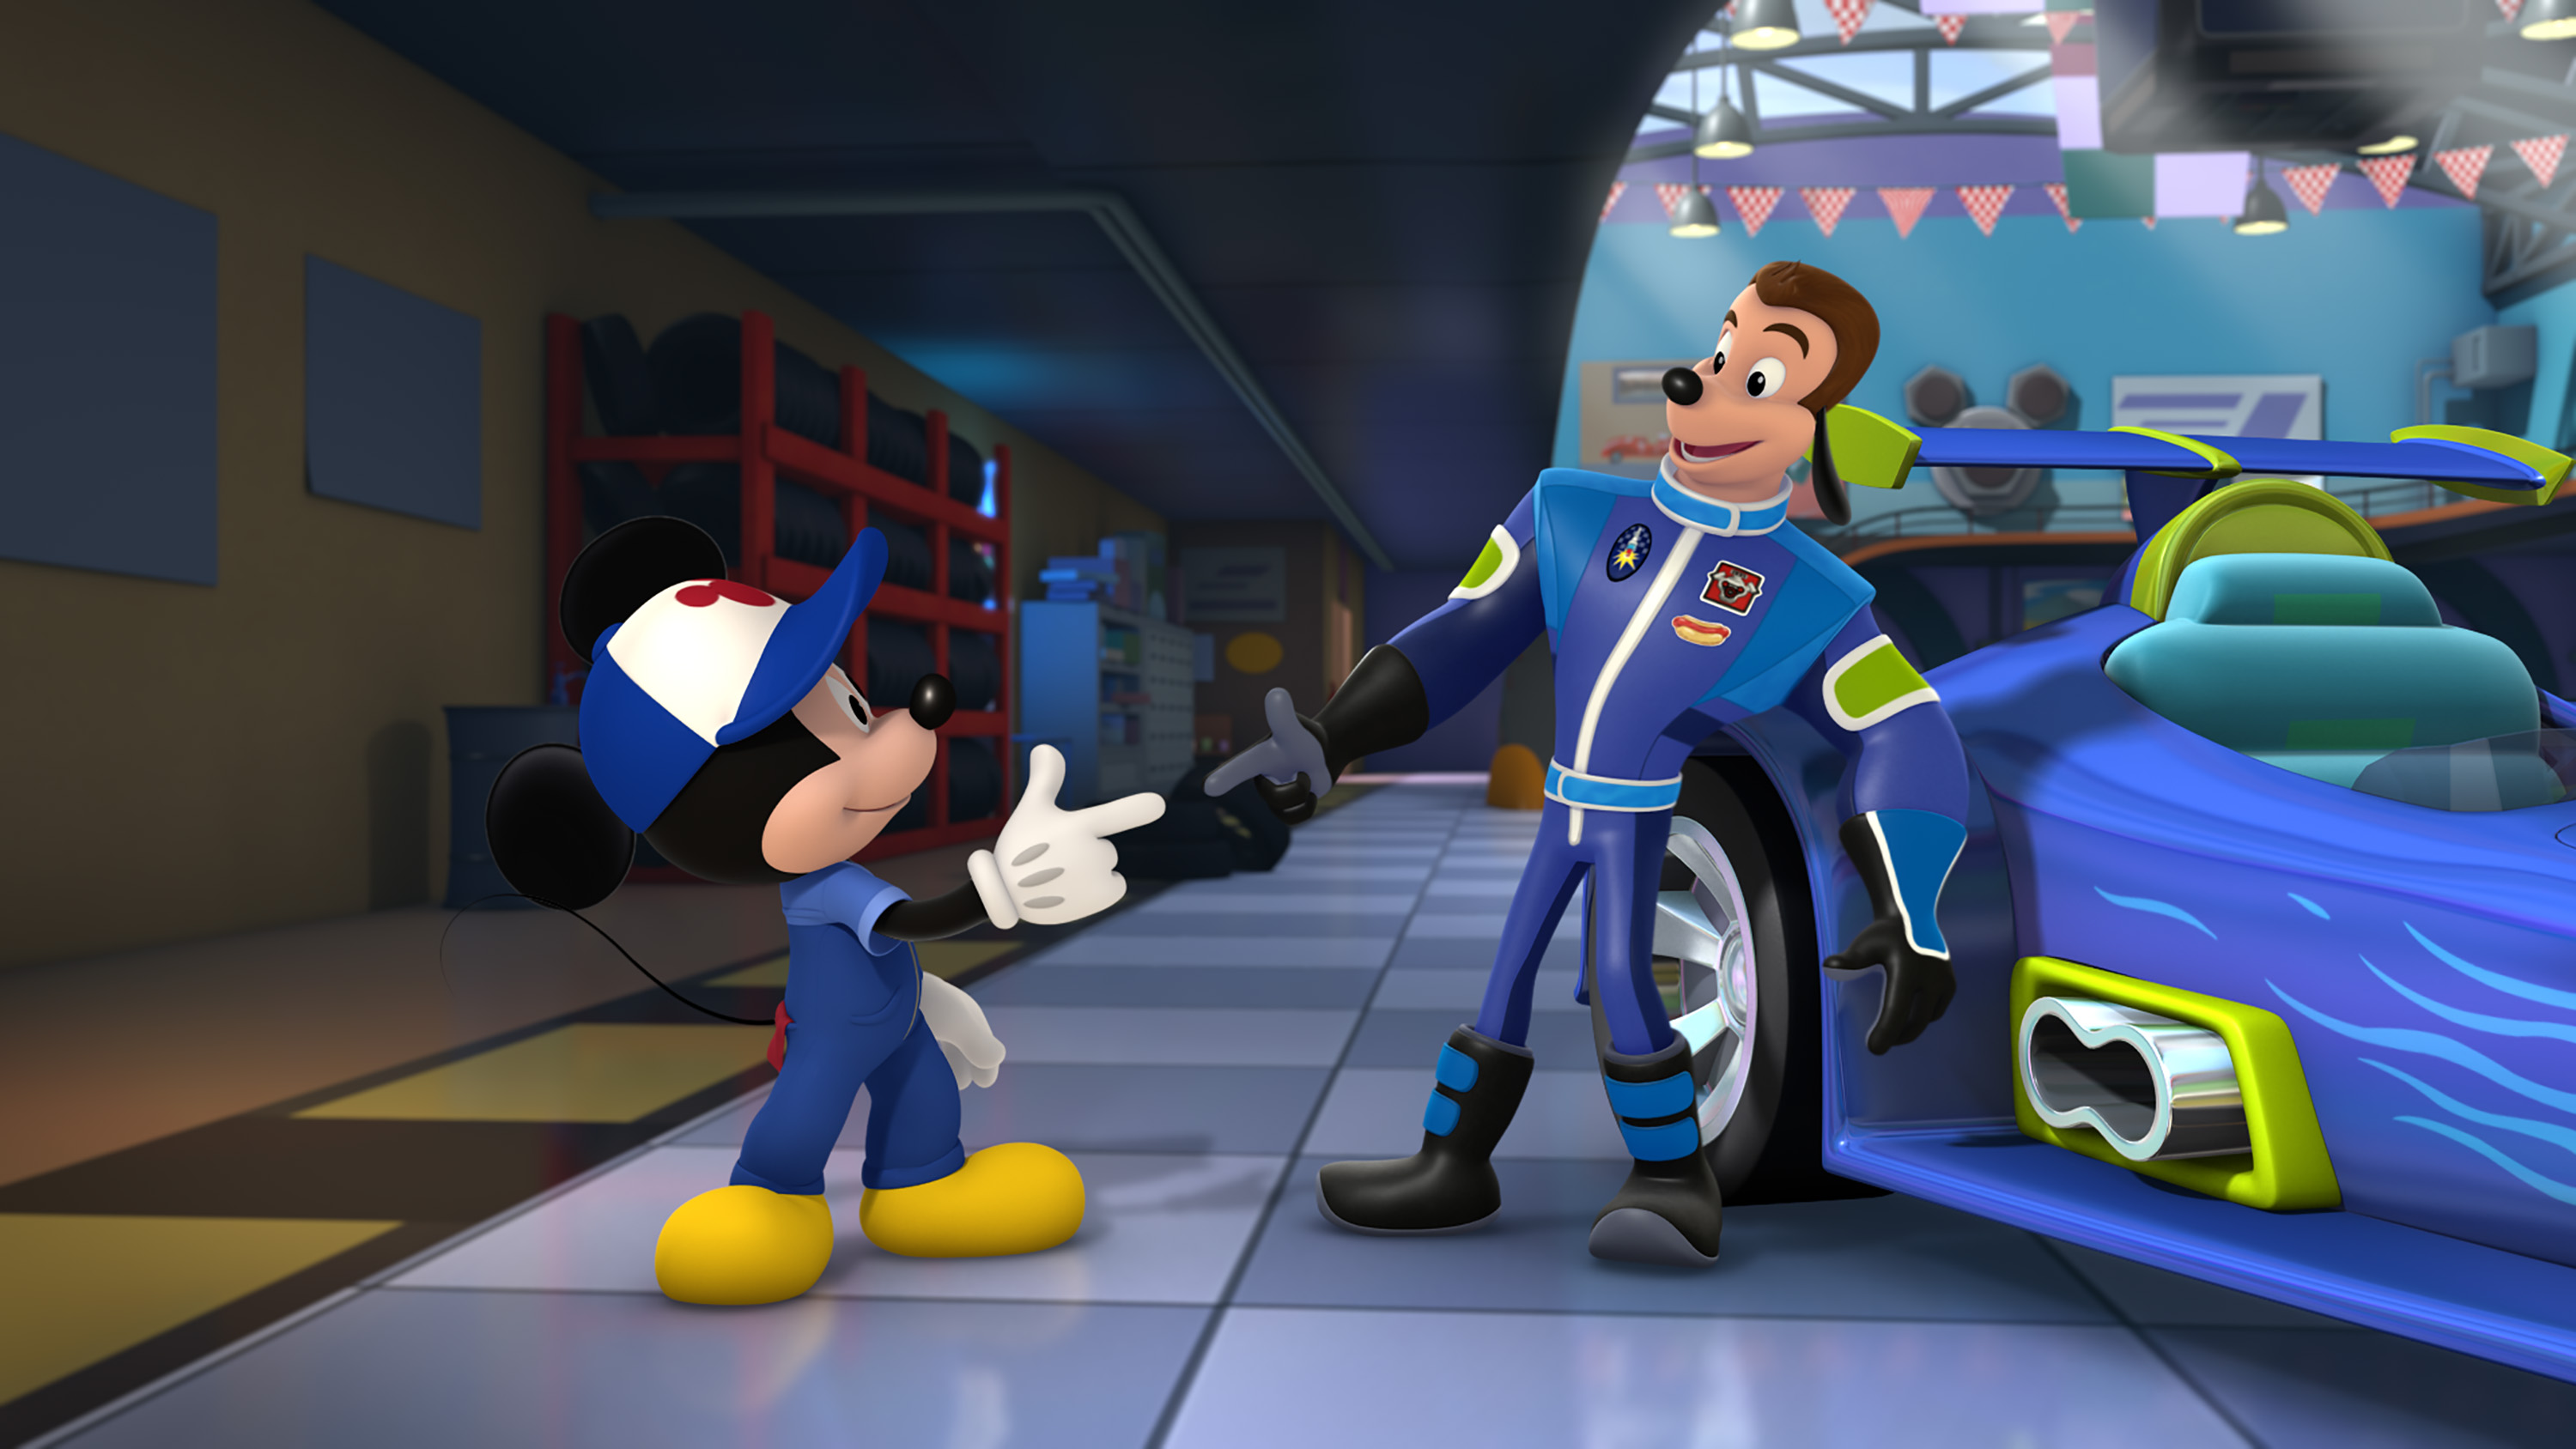 Nascar Stars Team With Mickey Mouse In New Disney Show